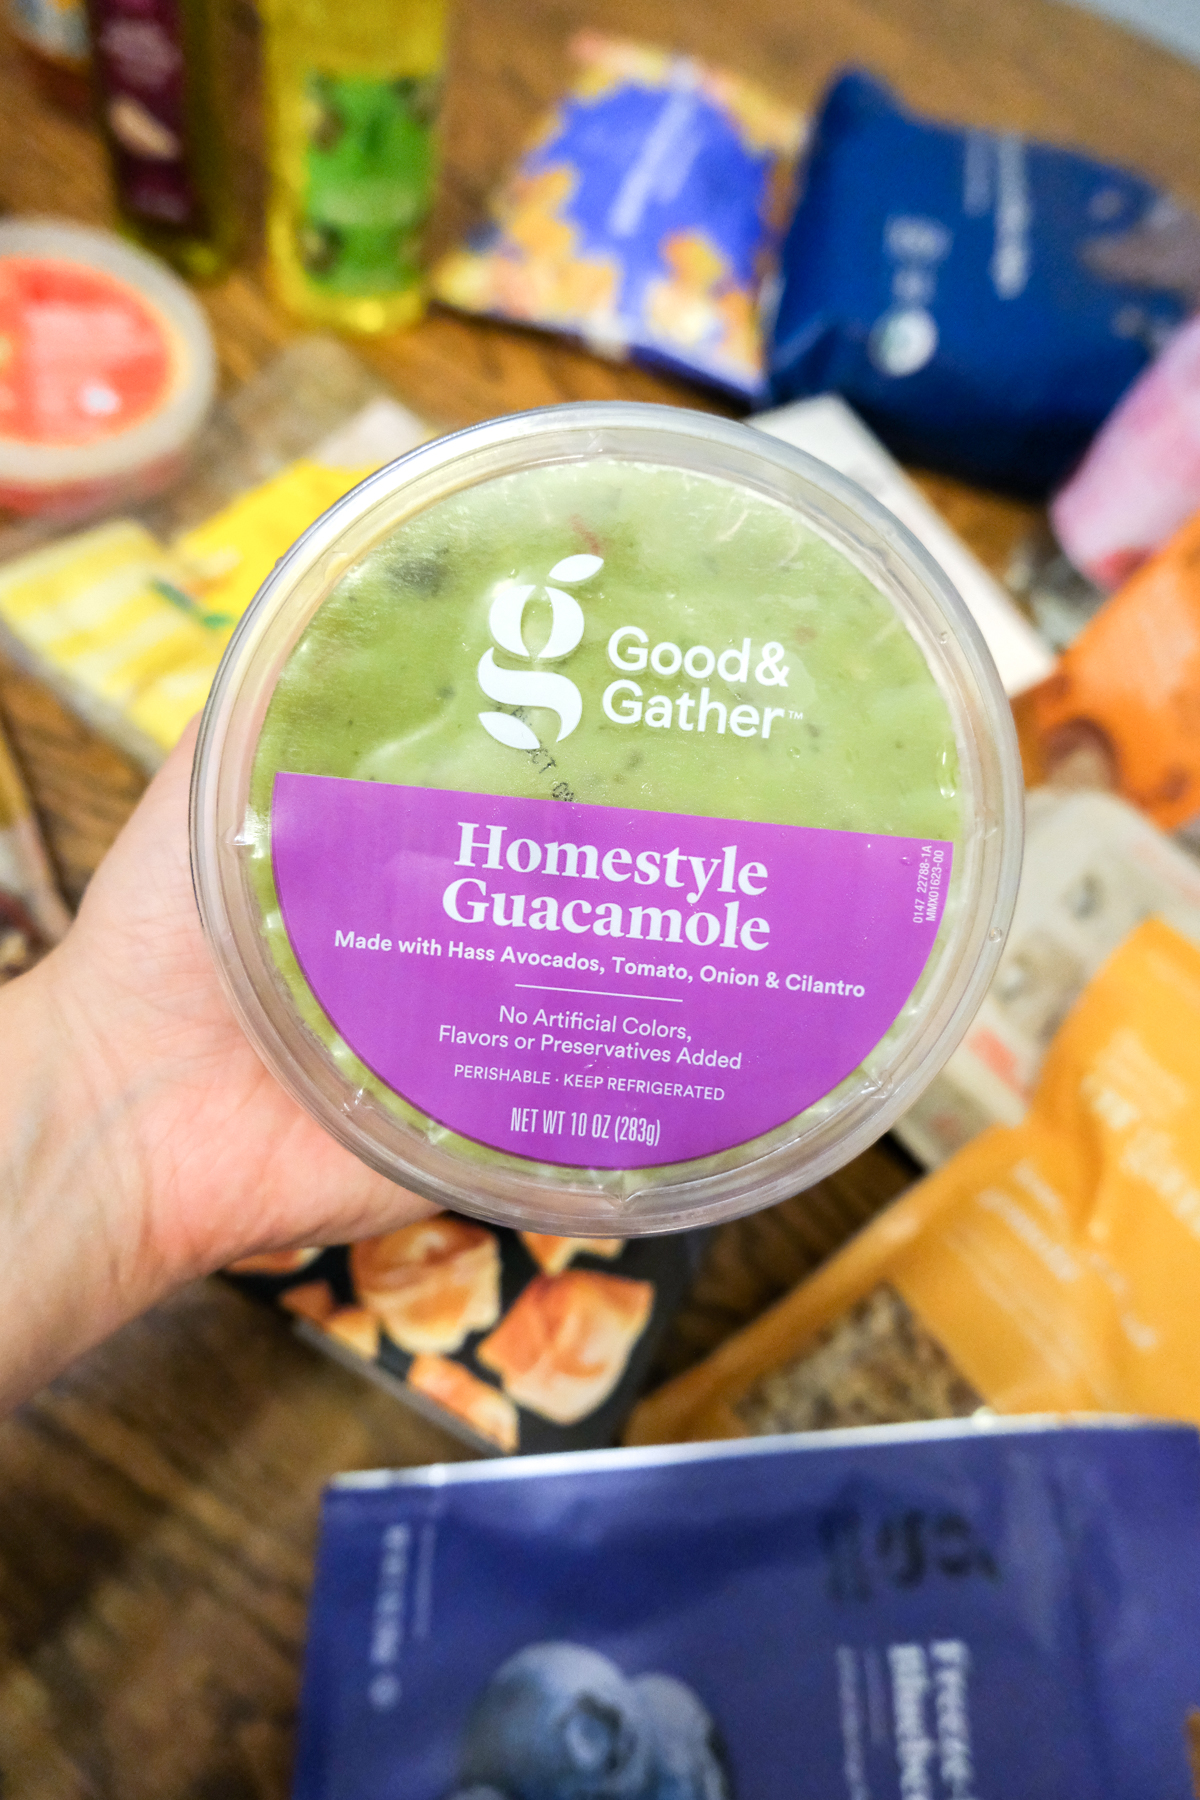 homestyle guacamole Good & Gather from Target